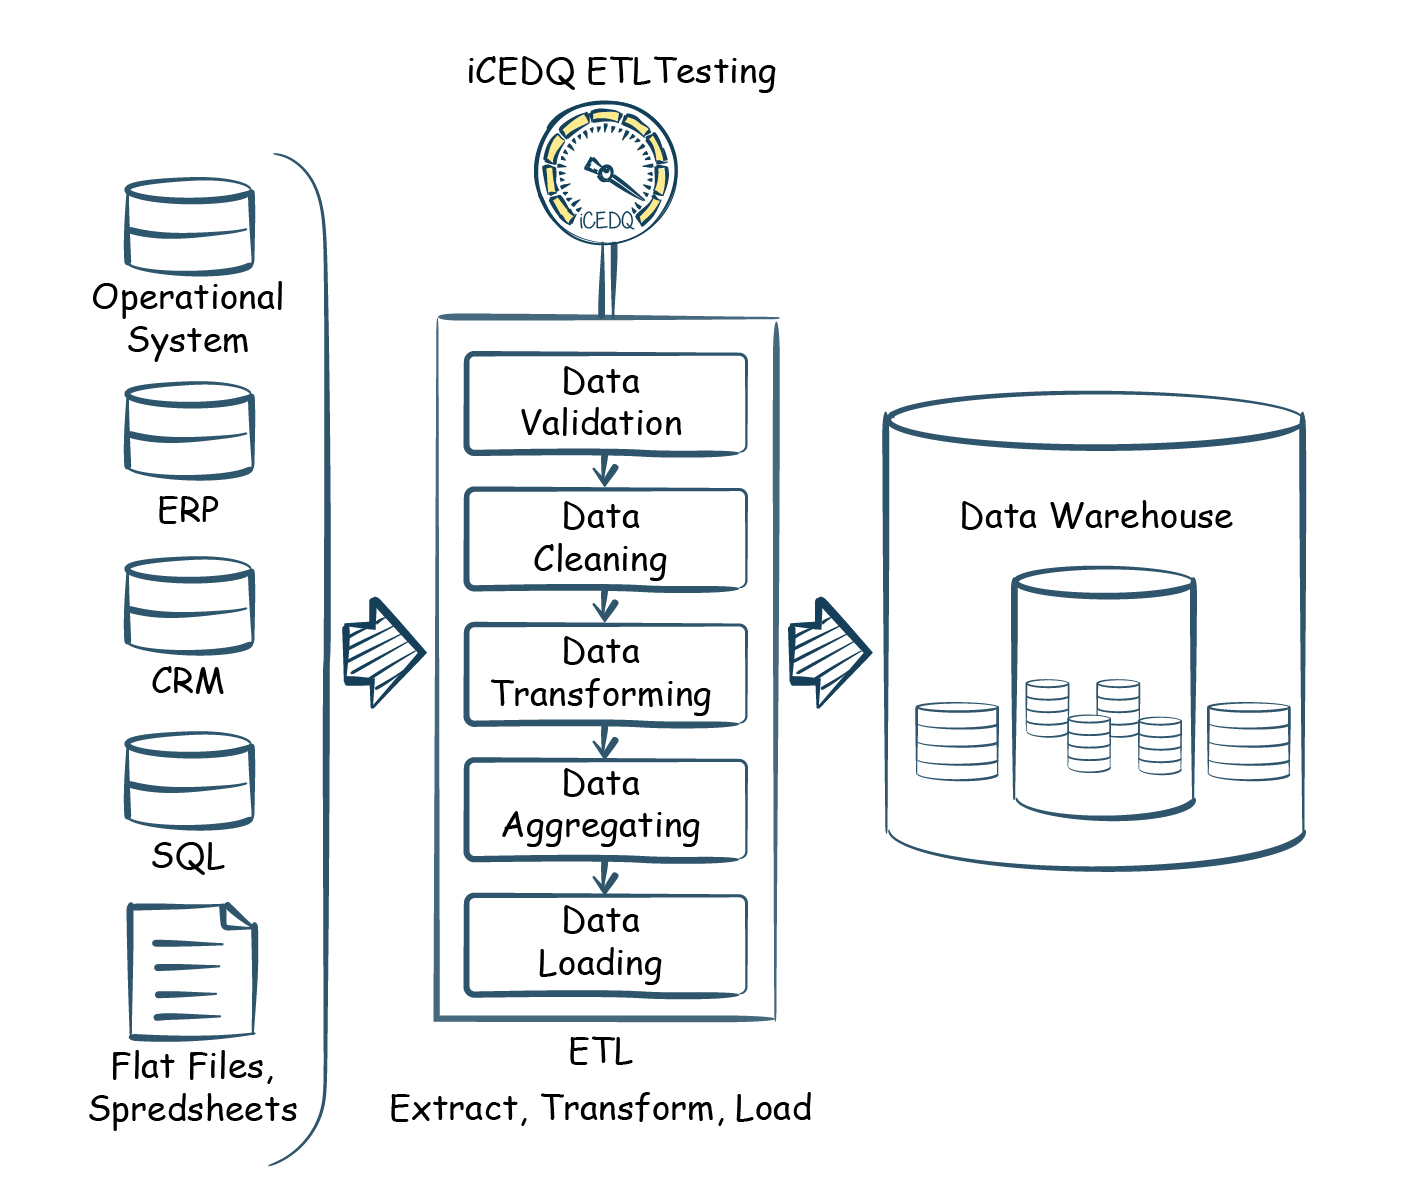 Why etl testing is required